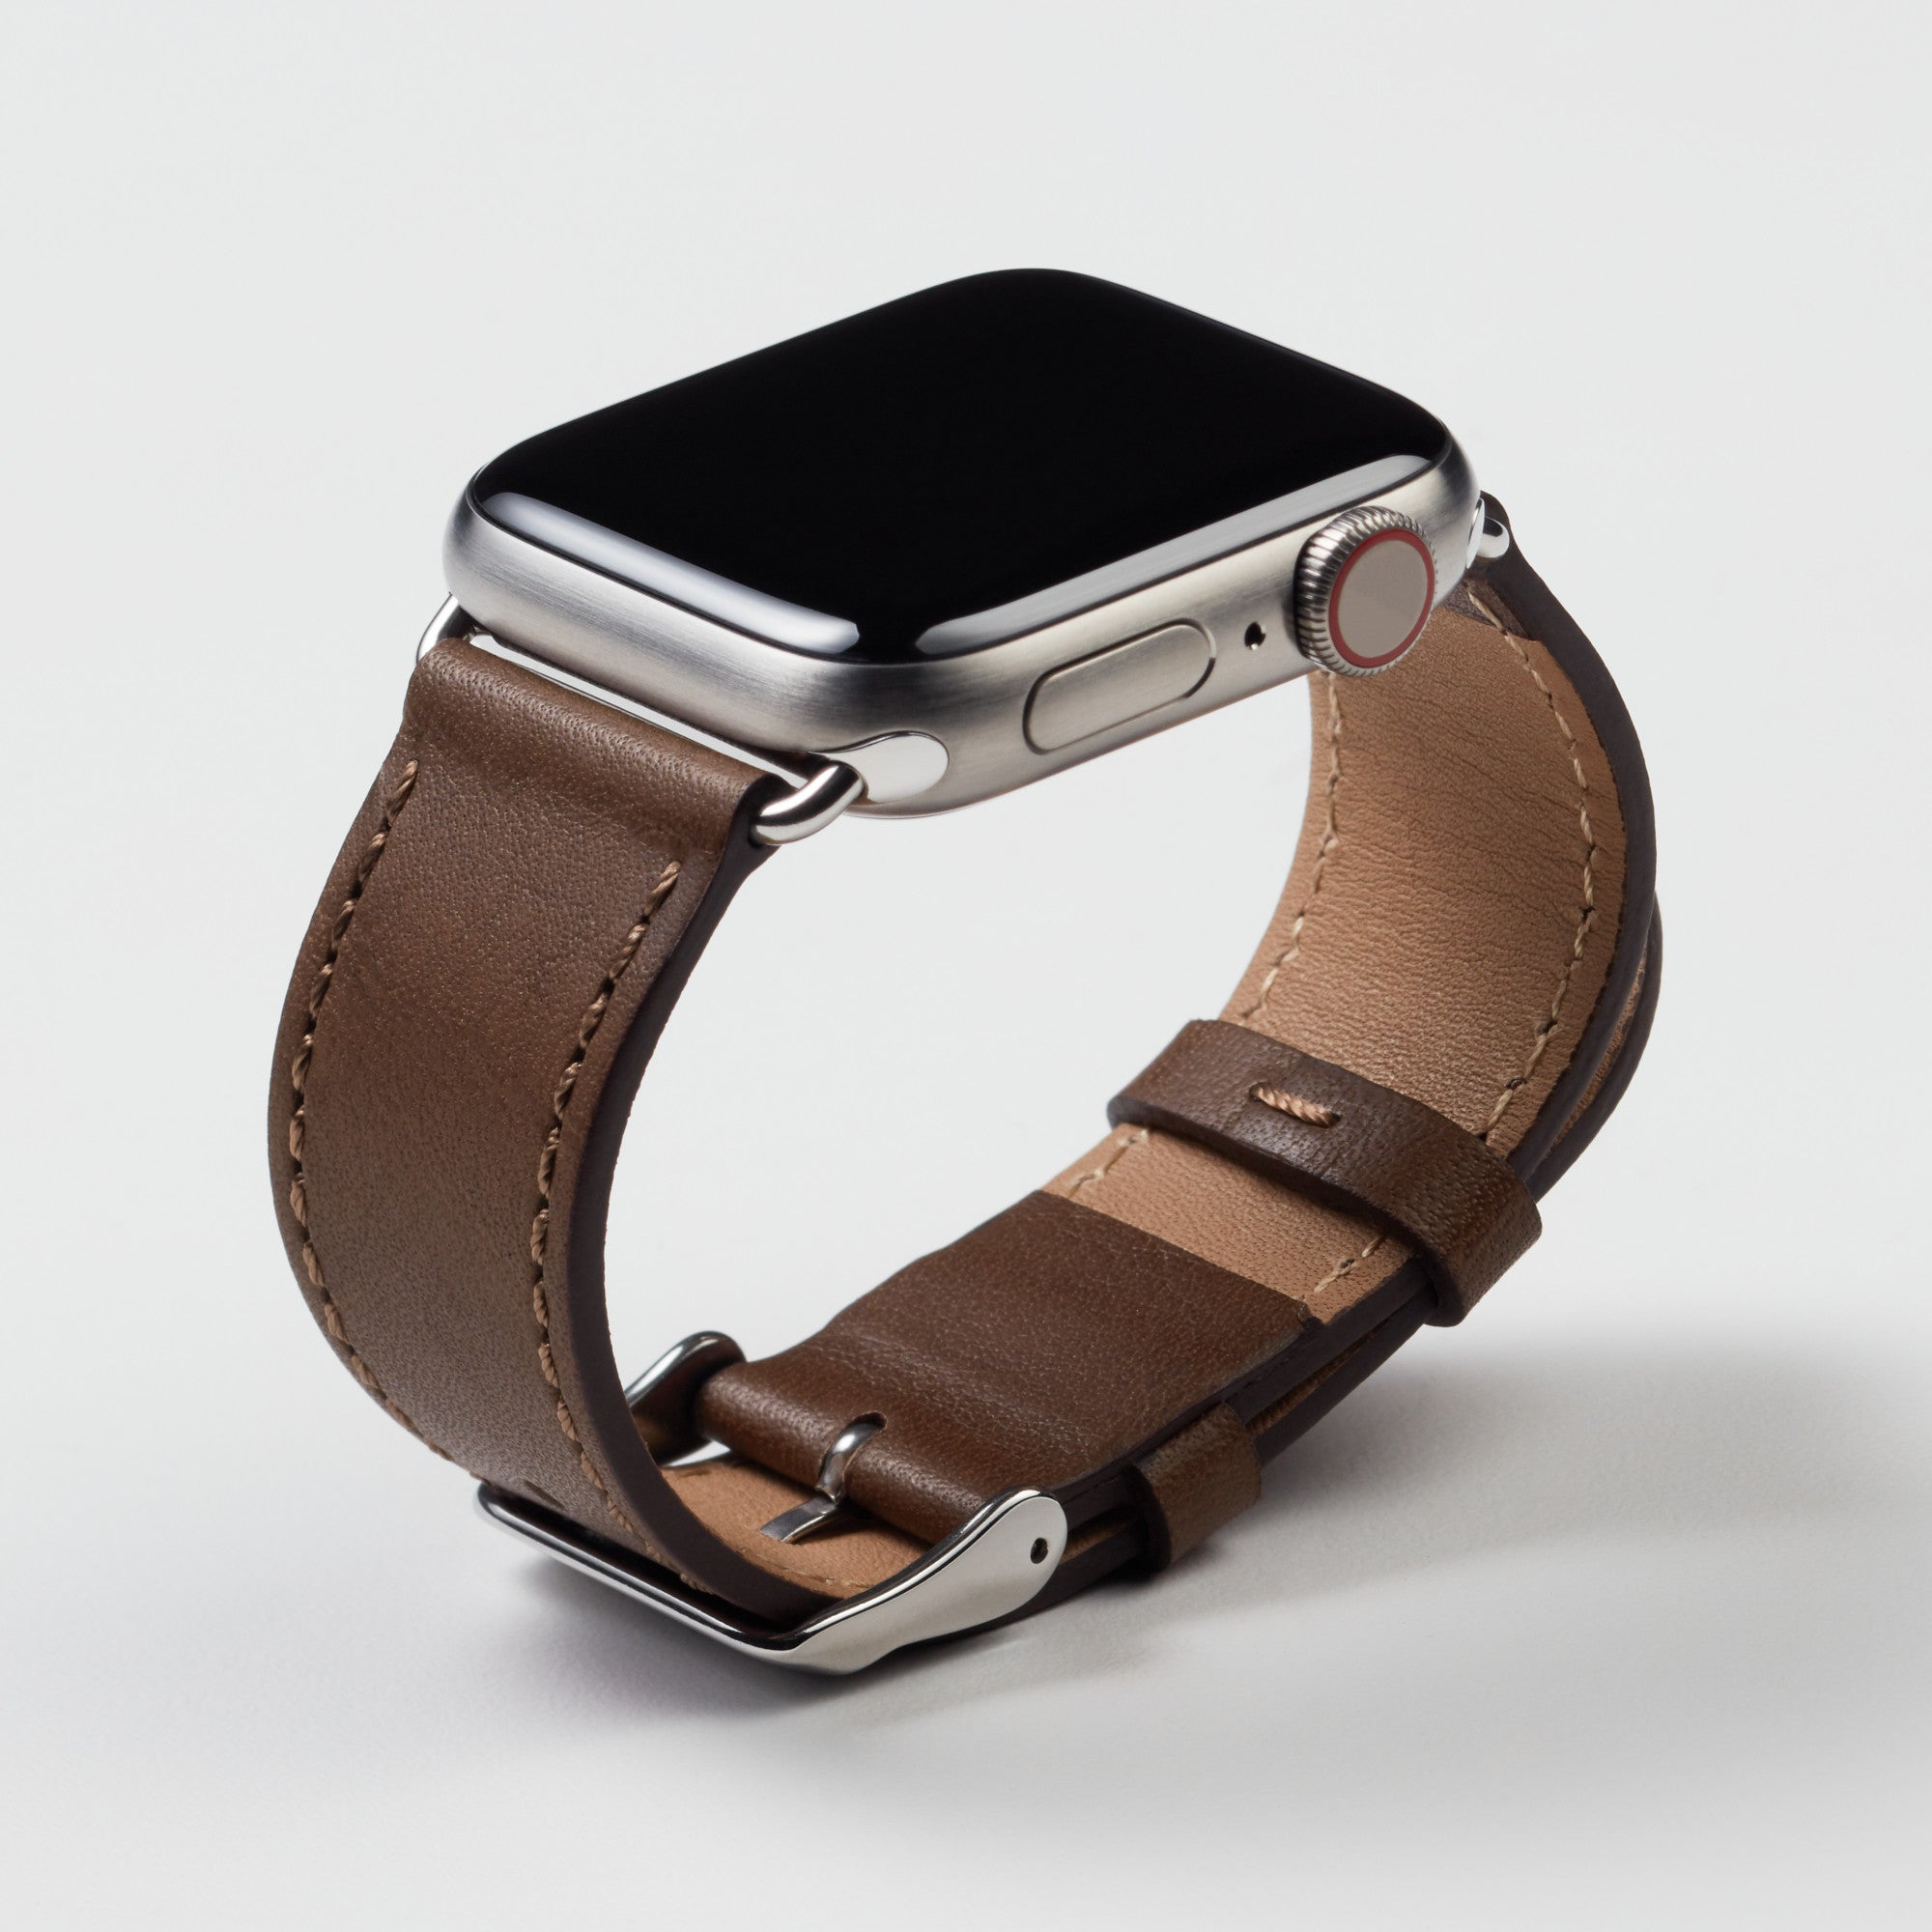 Pin and Buckle Apple Watch Bands - Full Grain Vegetable Tanned Leather - Luxe - Mocha Brown - Silver